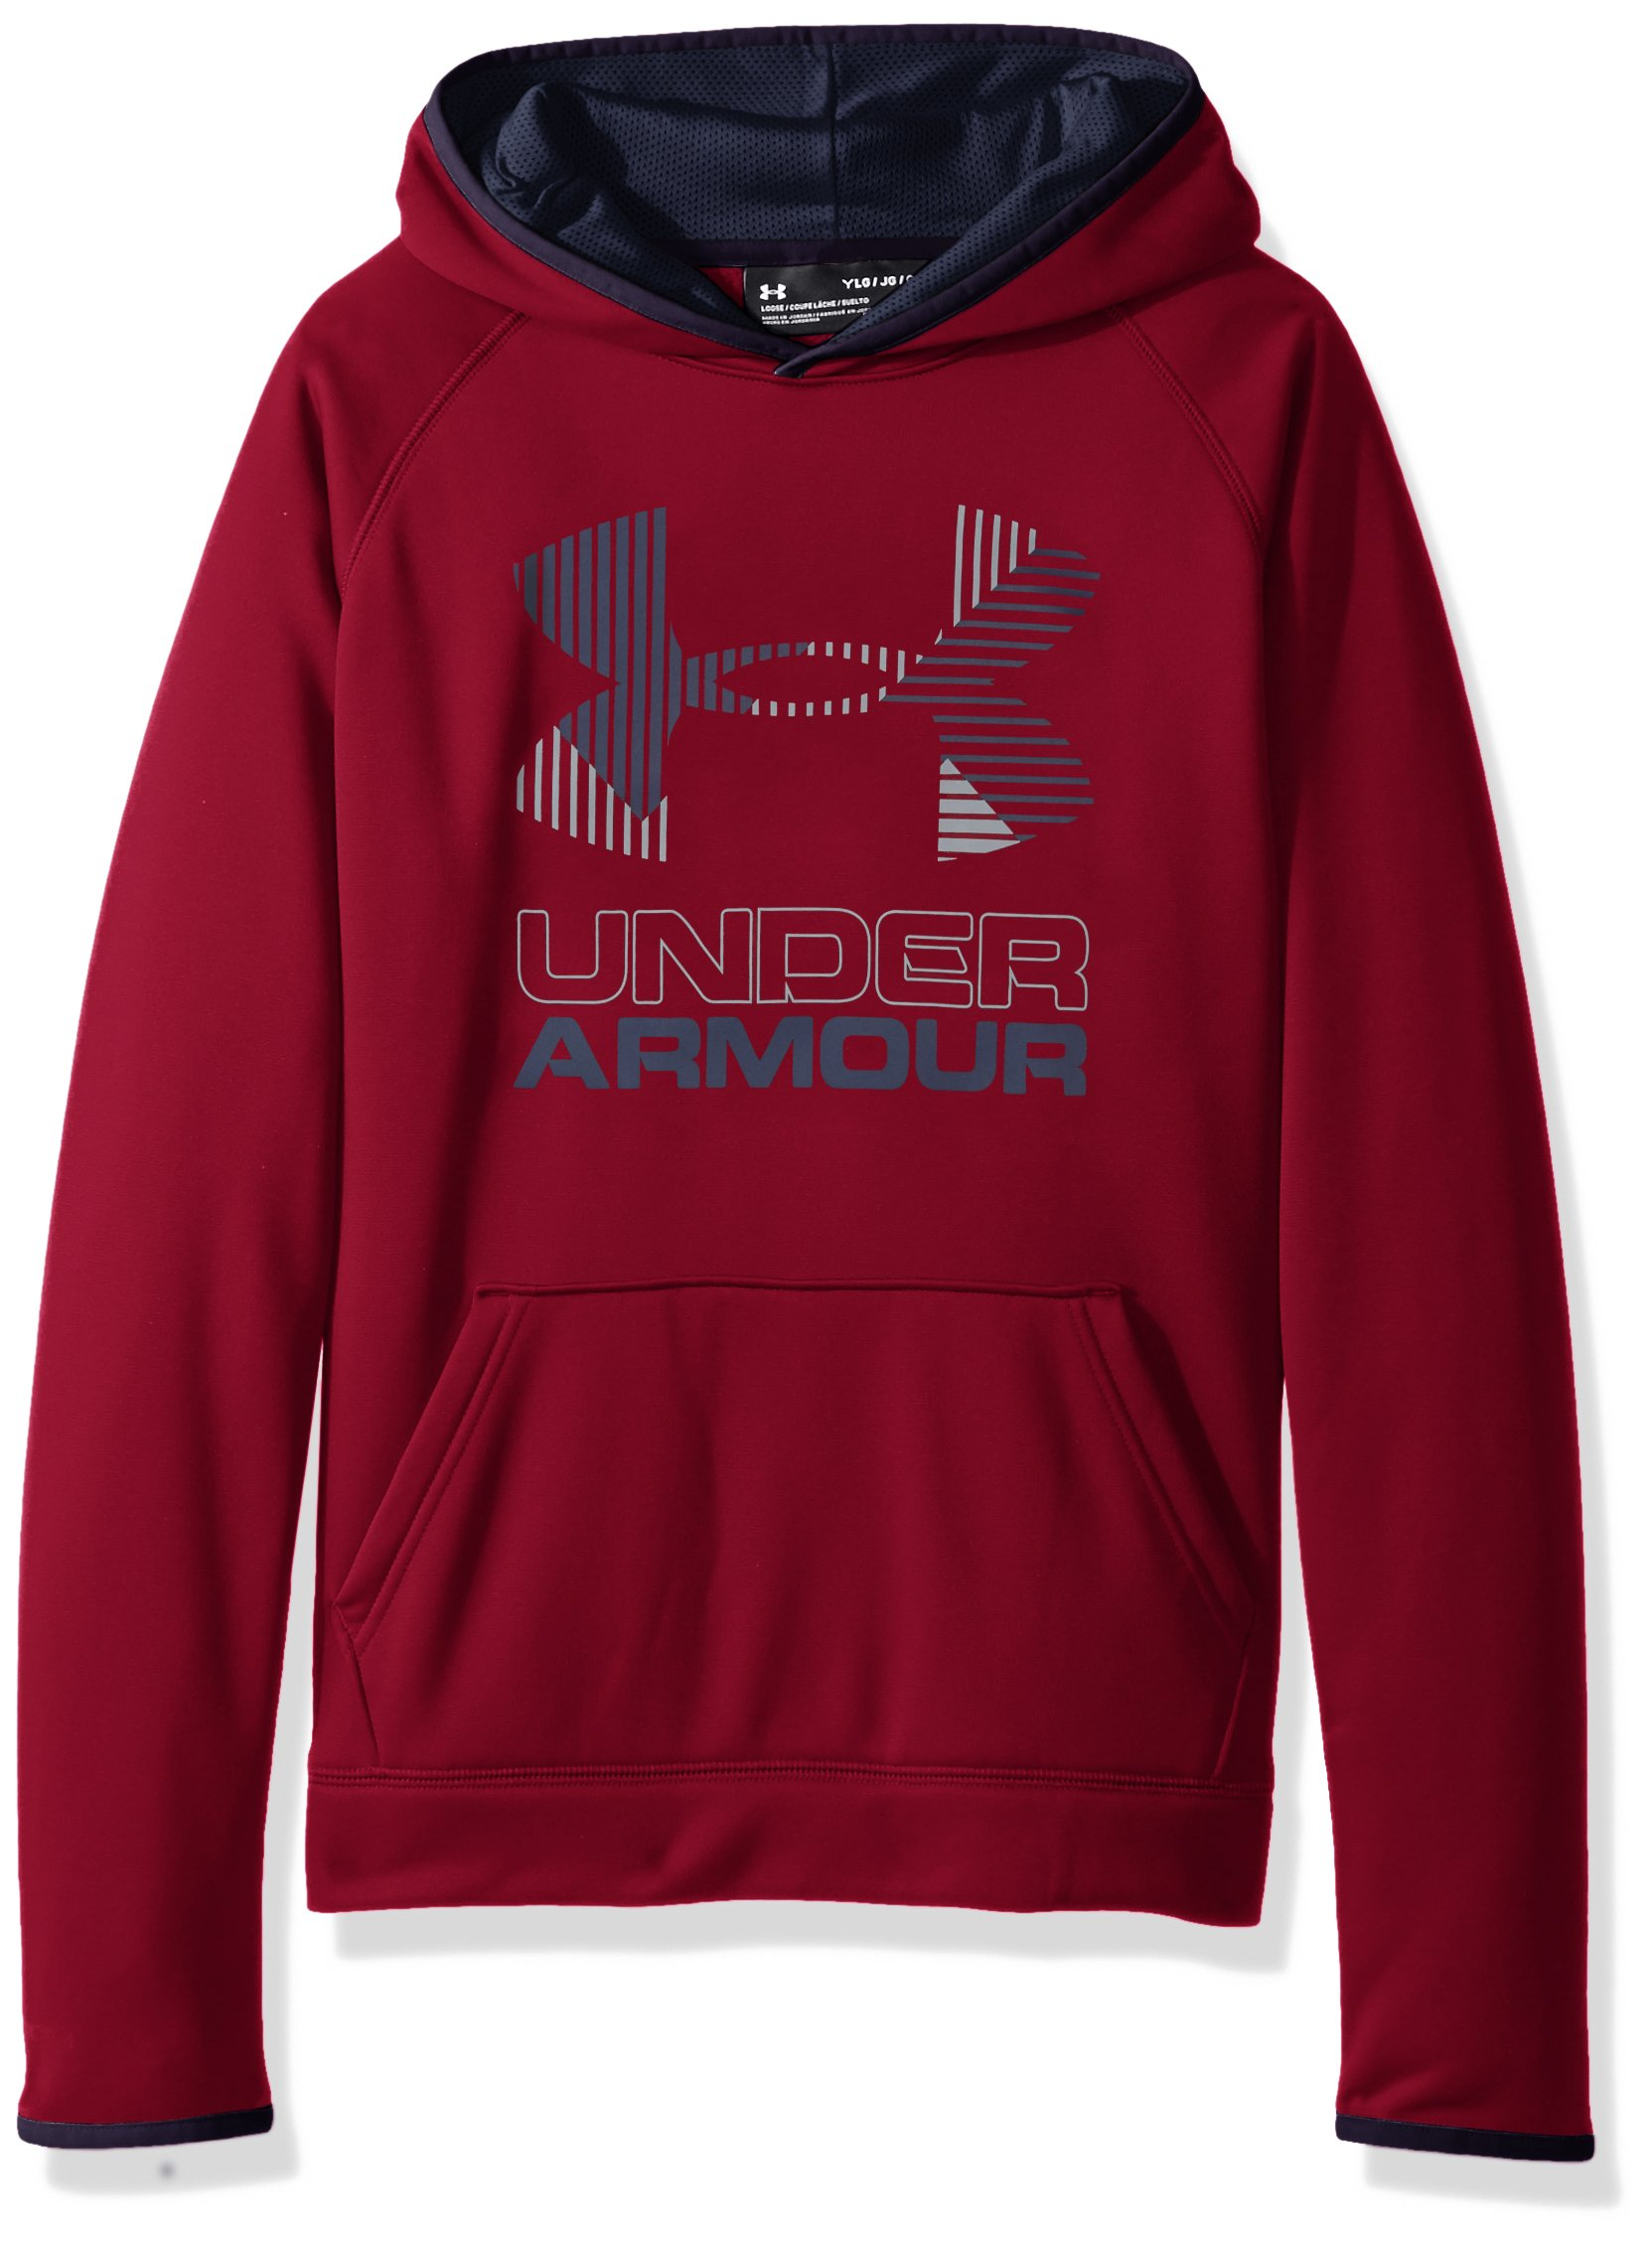 Under Armour Boys' Armour Fleece Solid Big Logo Hoodie, Black Currant /Steel, Youth X-Small